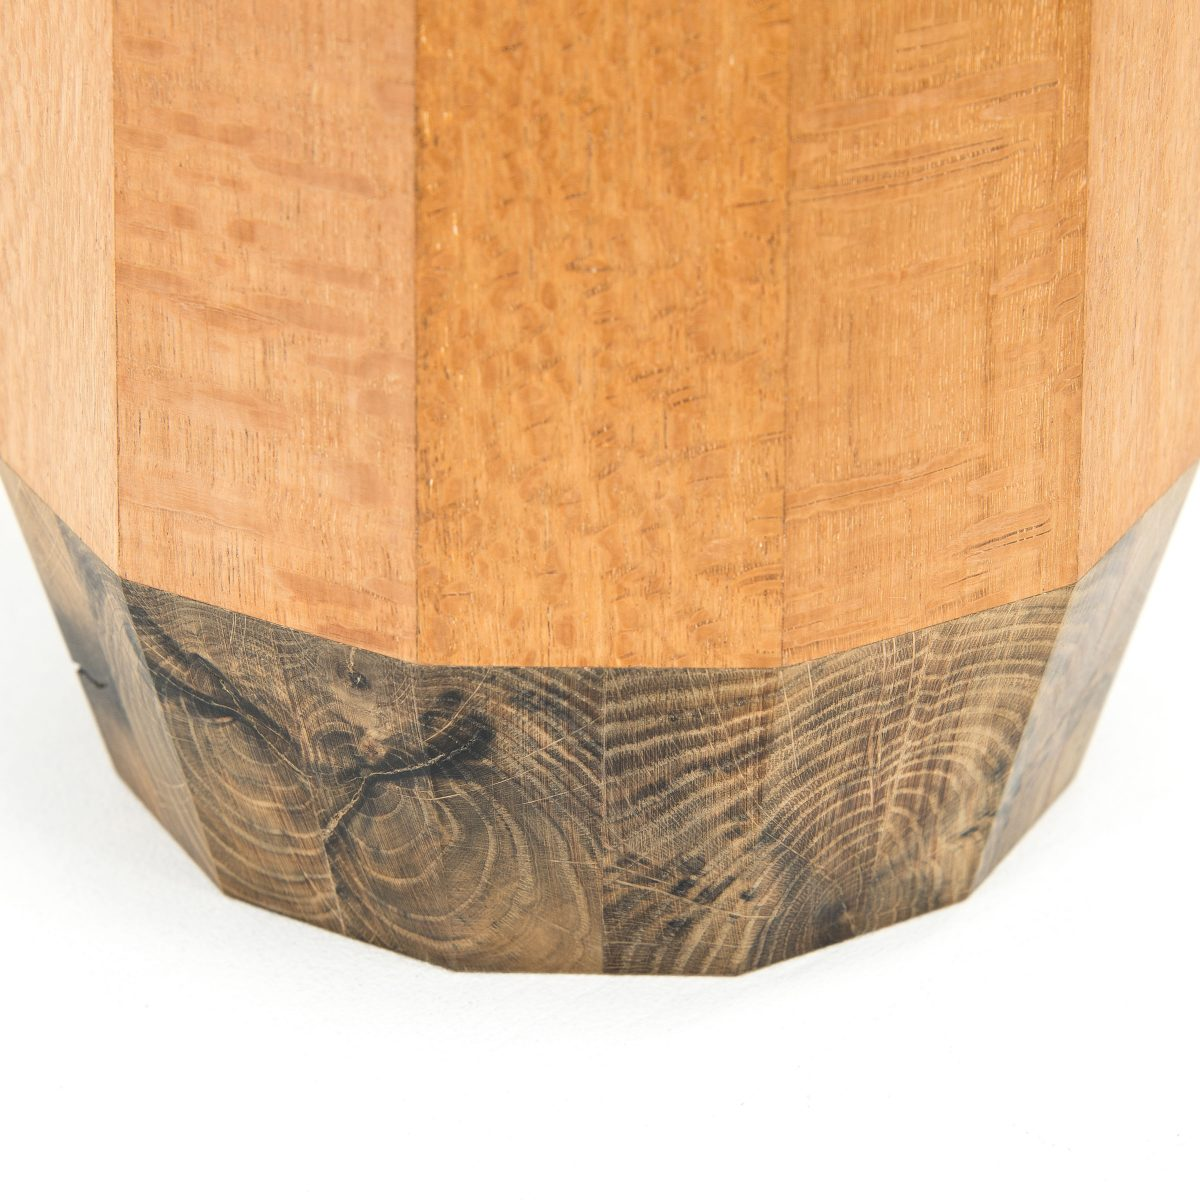 Jan Hendzel Studio kingston black oak-3